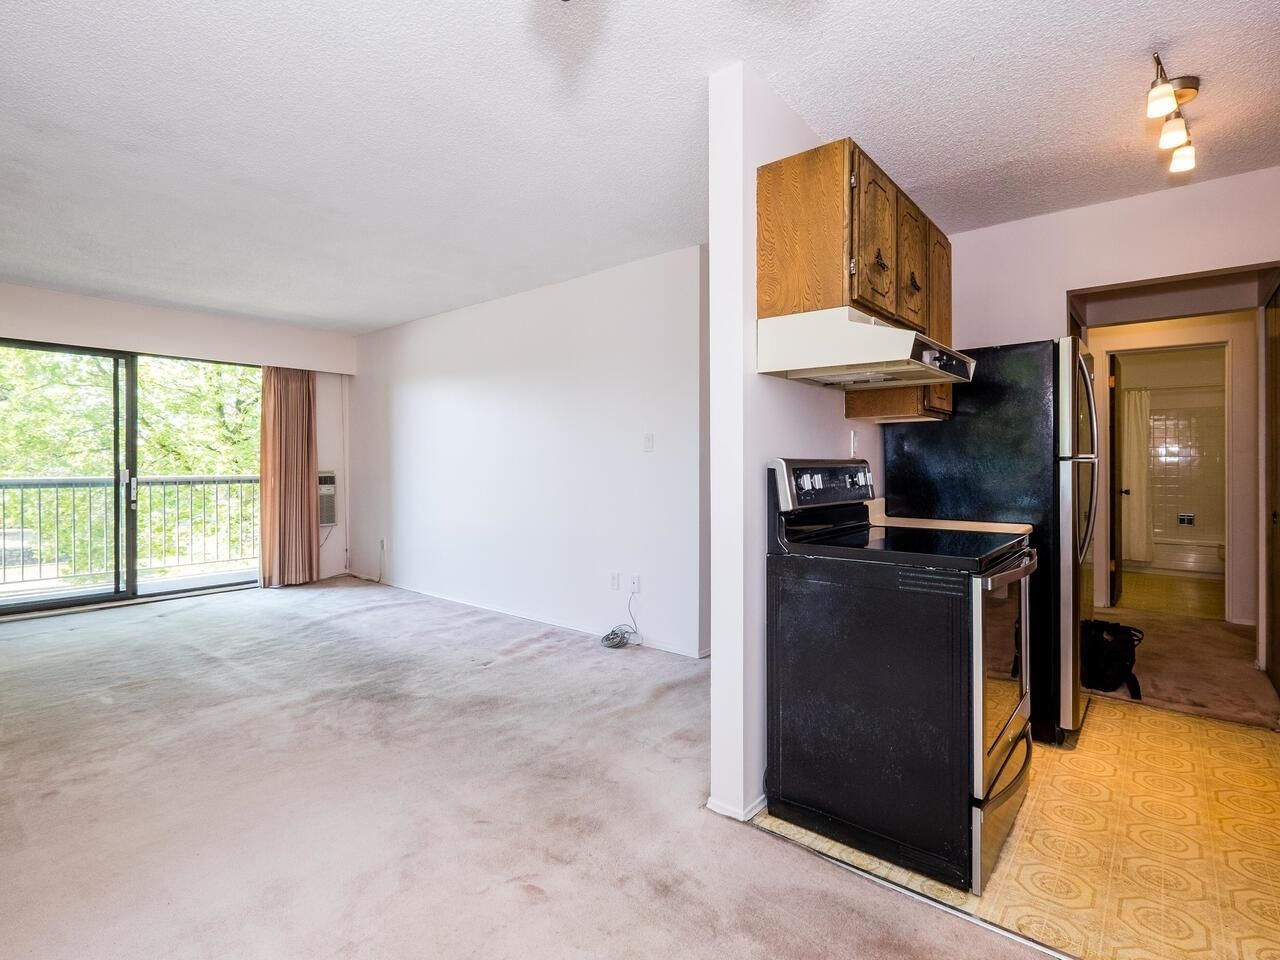 """Photo 8: Photos: 209 2600 E 49TH Avenue in Vancouver: Killarney VE Condo for sale in """"Southwinds"""" (Vancouver East)  : MLS®# R2600173"""